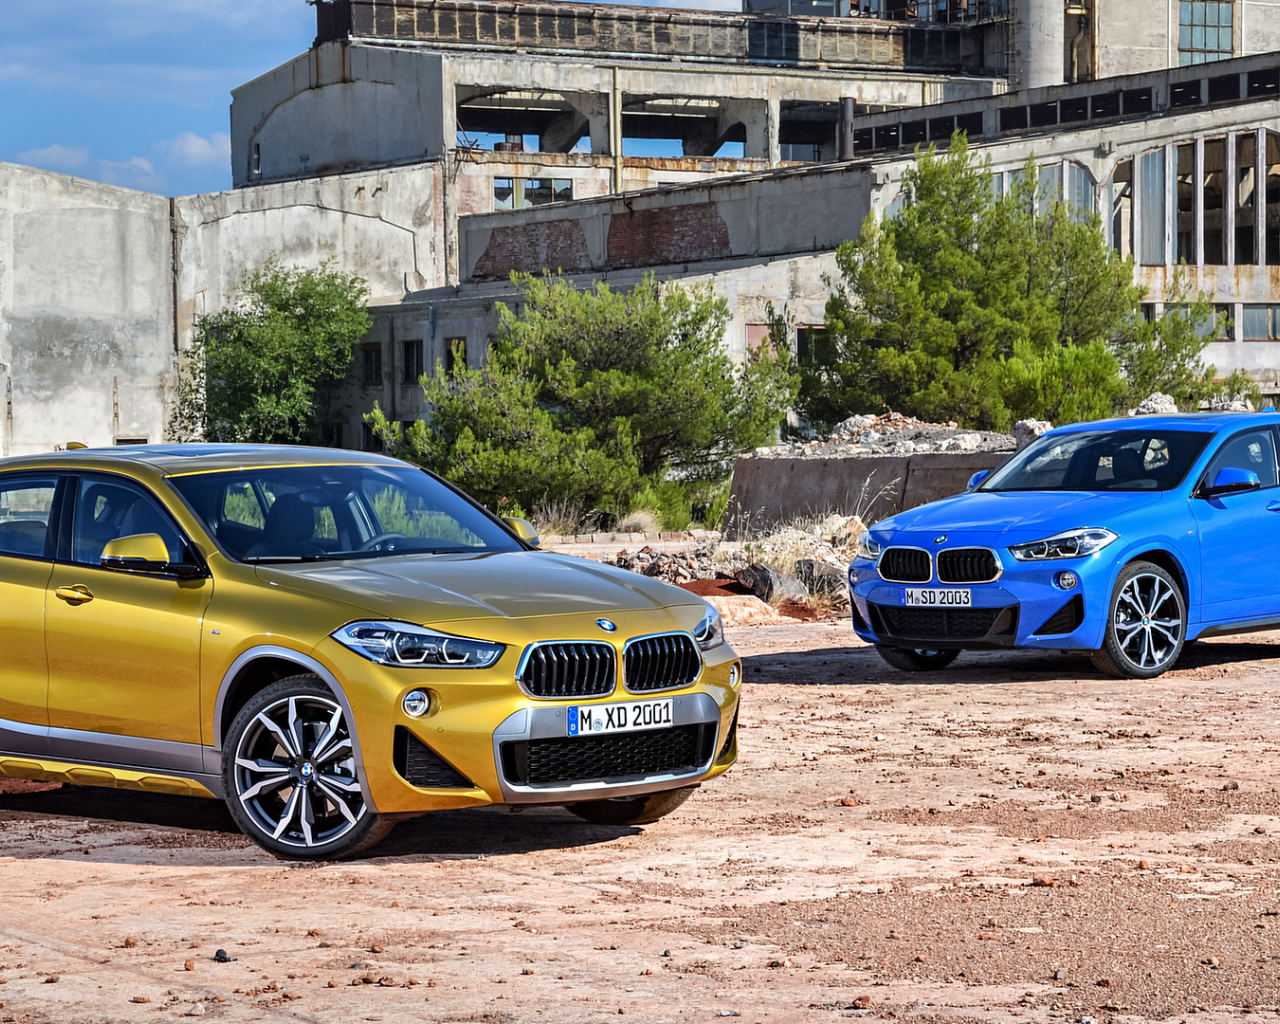 Free Download 2018 Bmw X2 Hd Wallpaper 25 1920x1080 For Your Desktop Mobile Tablet Explore 31 Bmw X2 Wallpapers Bmw X2 Wallpapers Durarara X2 Wallpaper Bmw Wallpaper